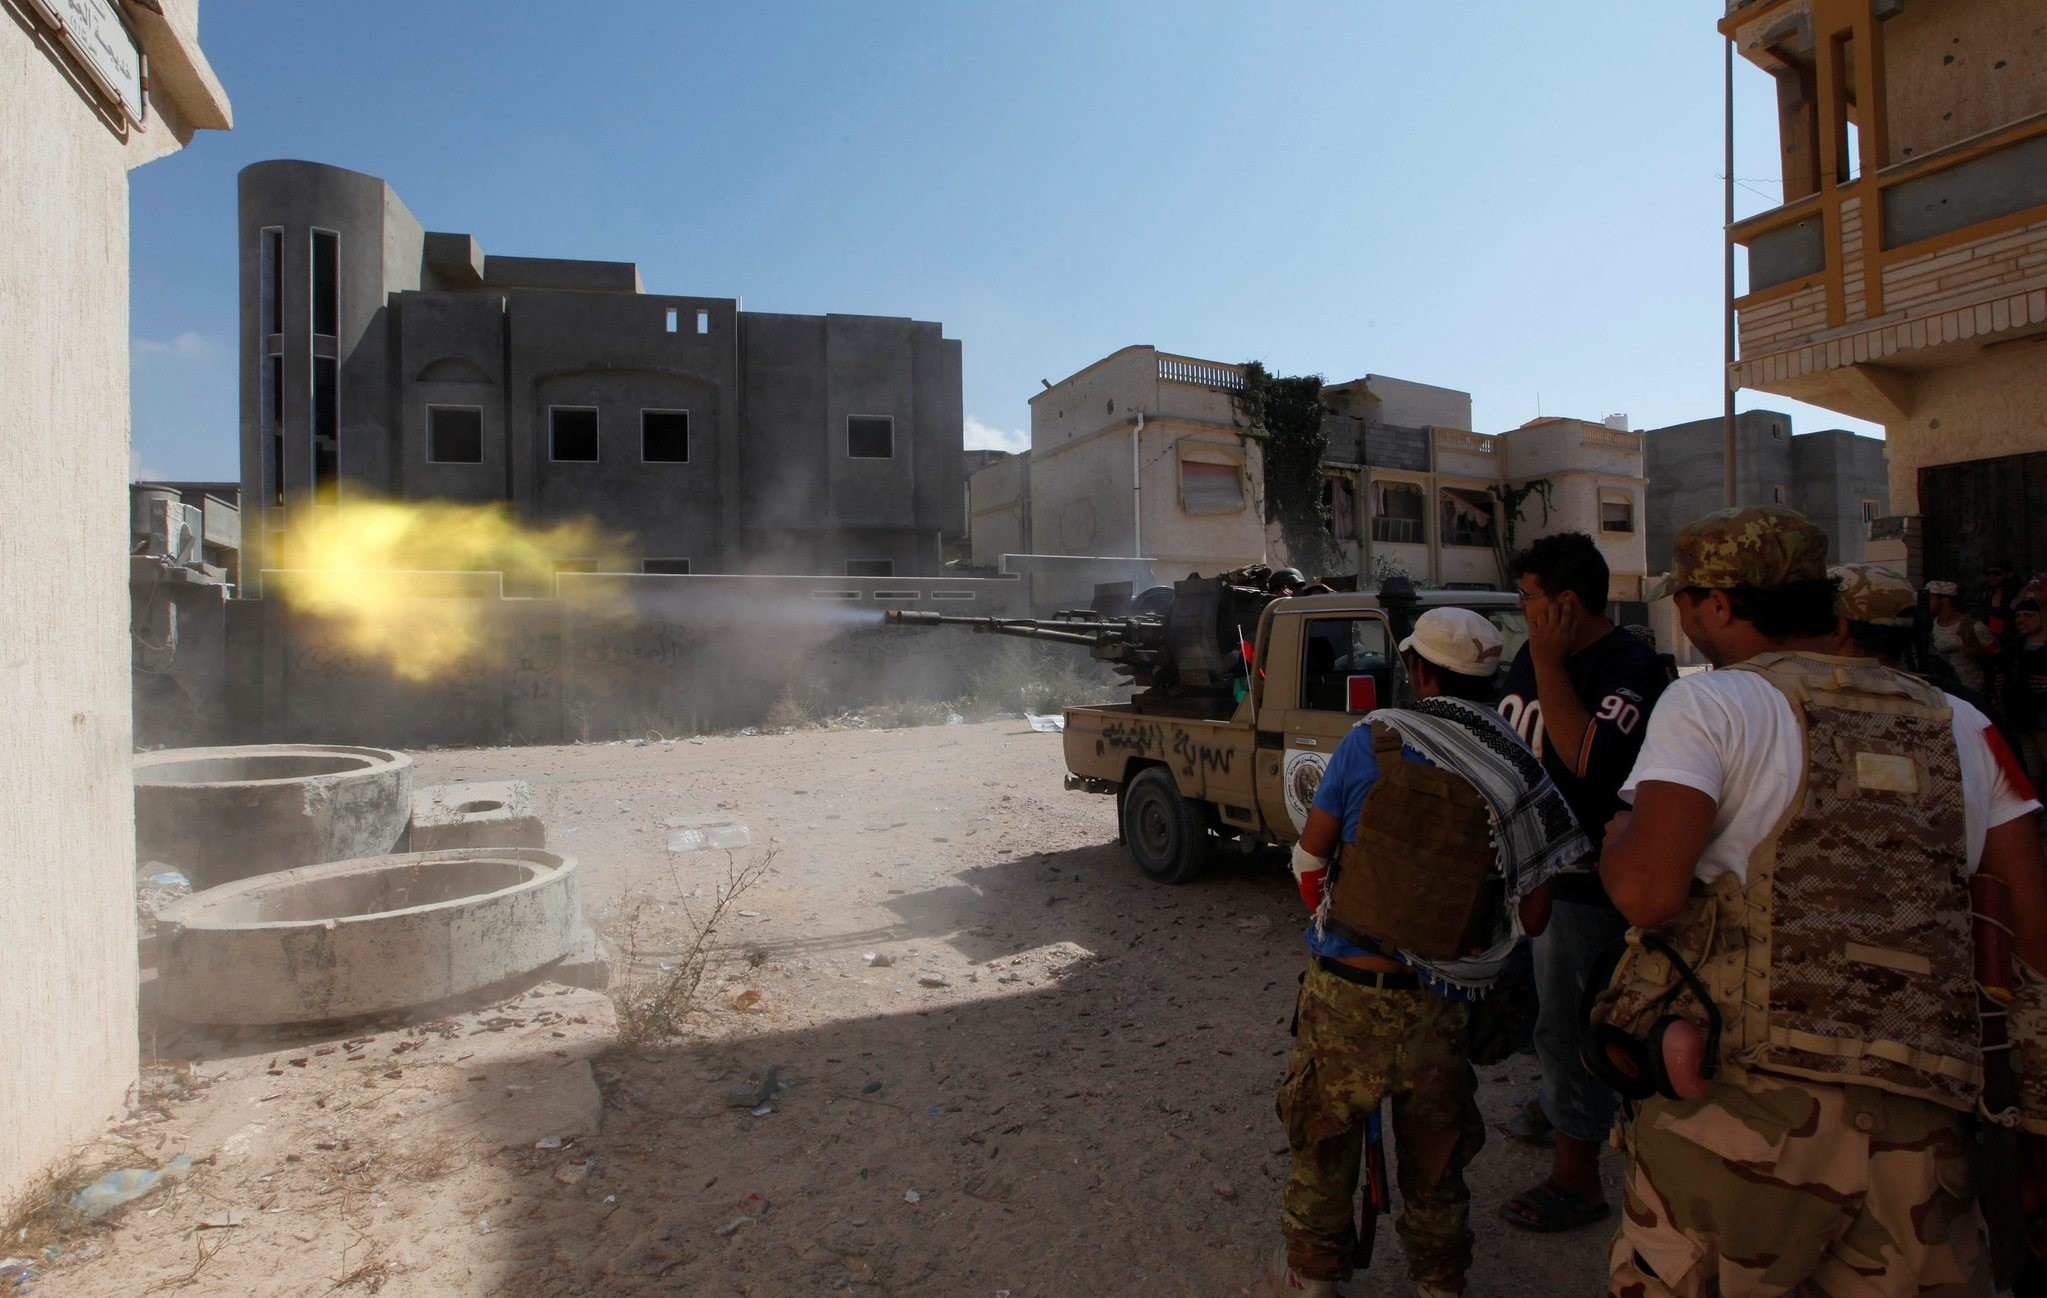 Members of Libyan forces allied with the UN-backed government fire a weapon towards Daesh militants in neighborhood Number One in central Sirte, Libya (Reuters Photo)